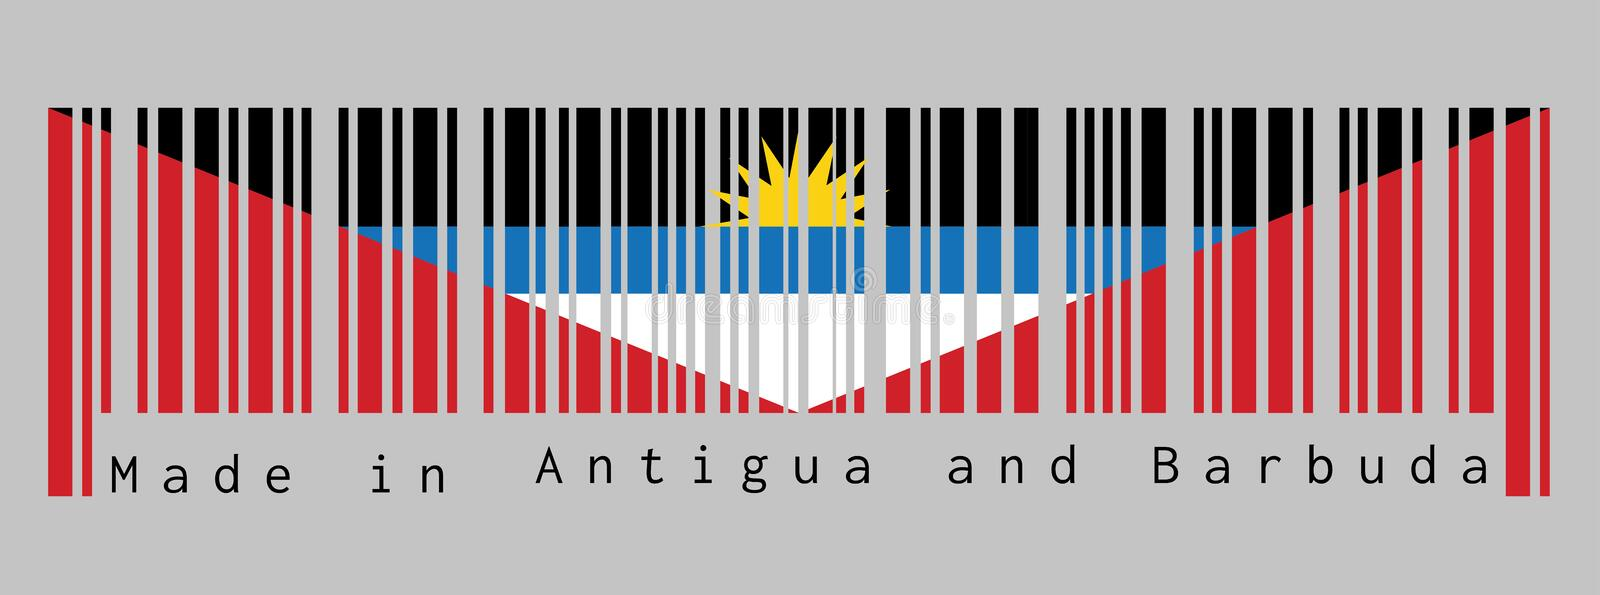 Barcode set the color of Antigua and Barbuda flag, black blue and white, with two red triangles with yellow half-sun. vector illustration